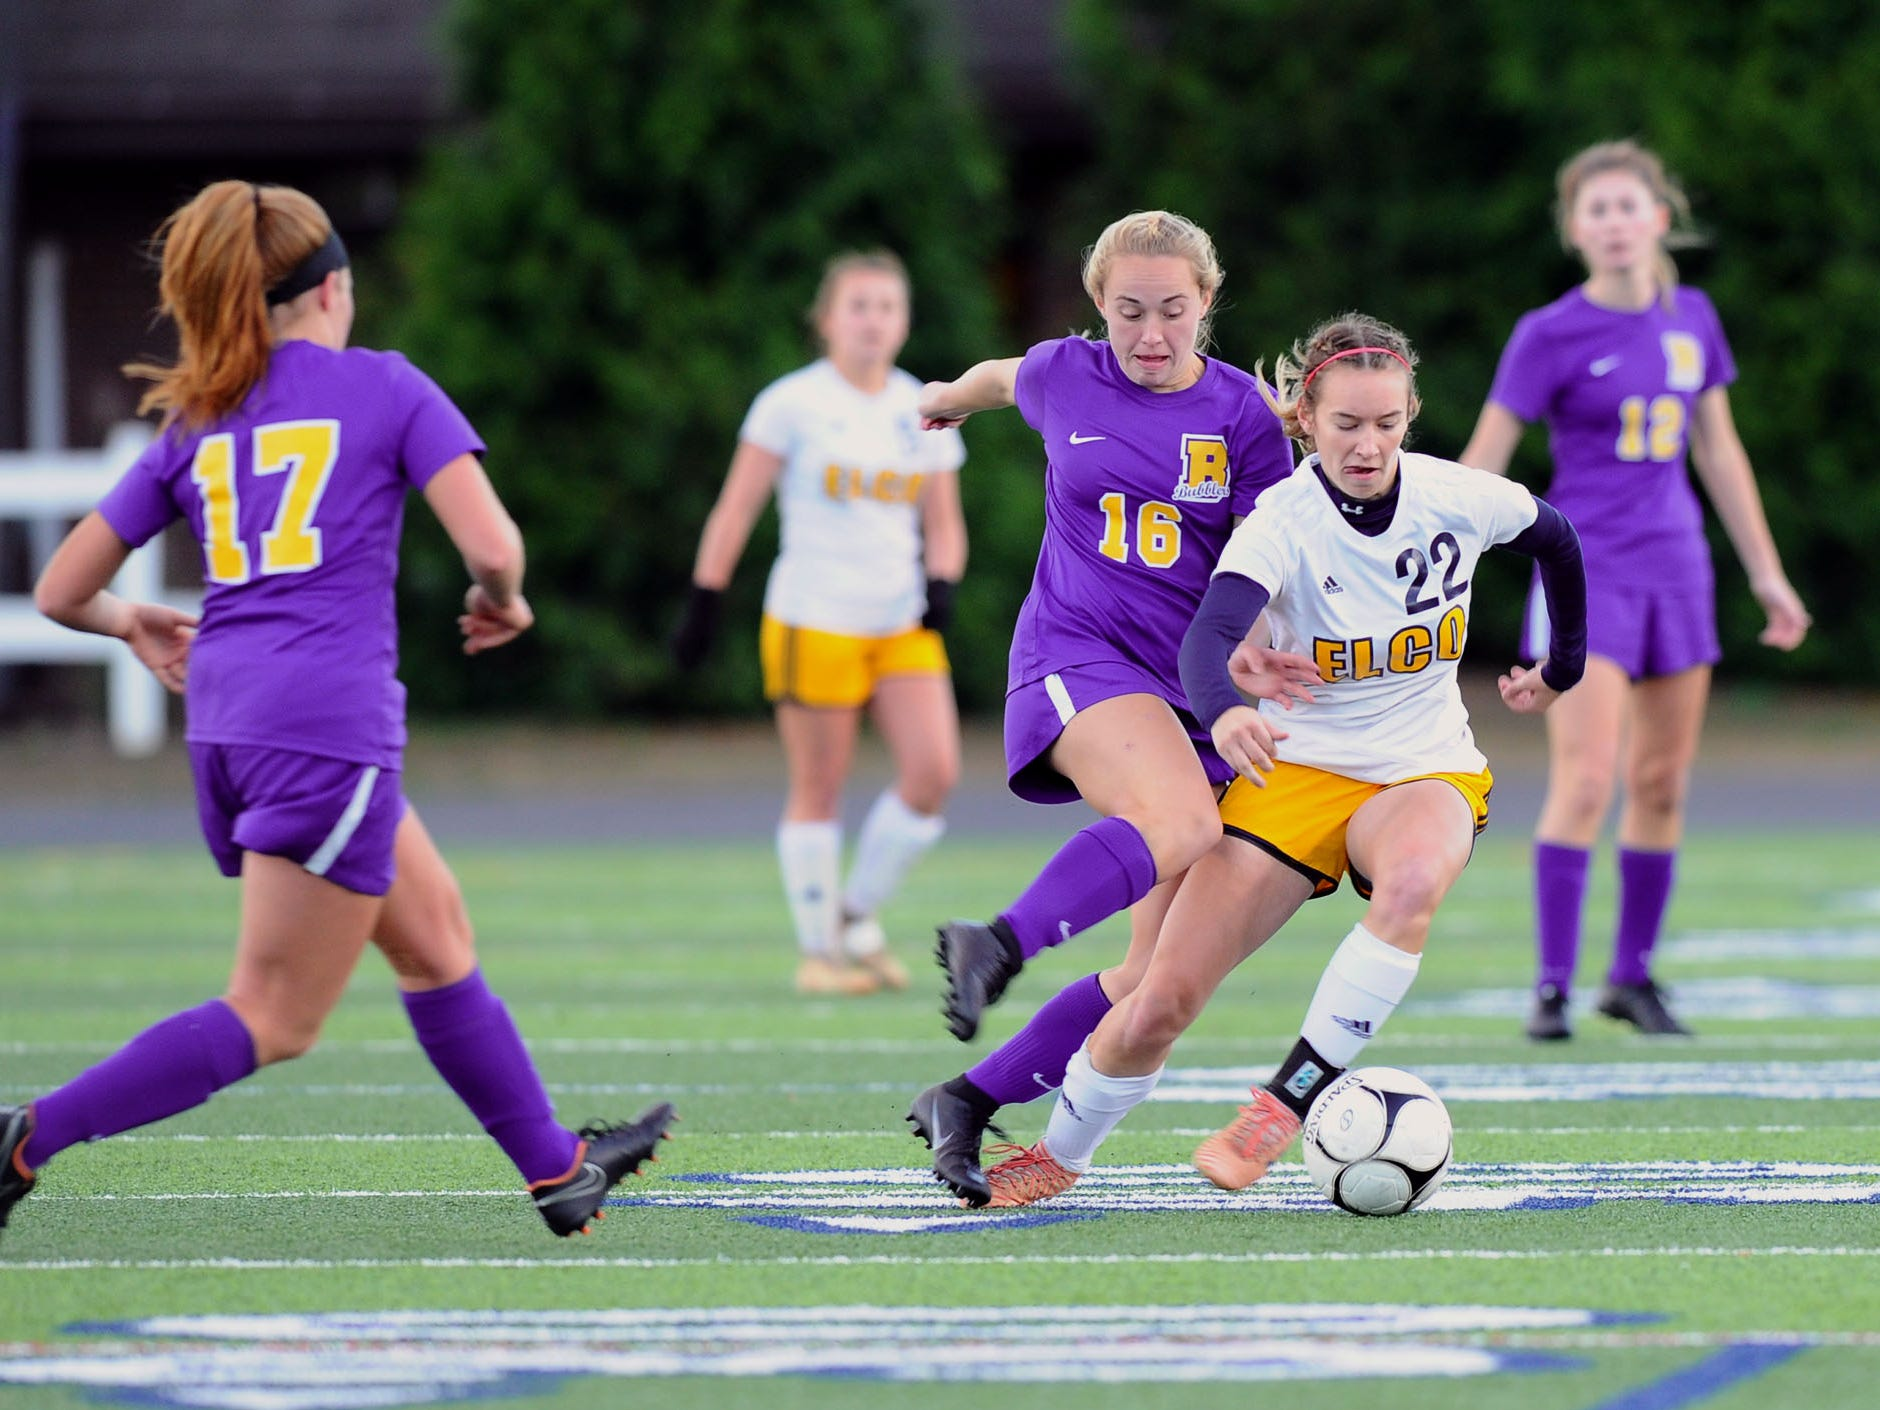 Elco's Jennifer Axarlis (22) battles Hannah Goodwin (16) of Boiling Springs for the ball during second half action.